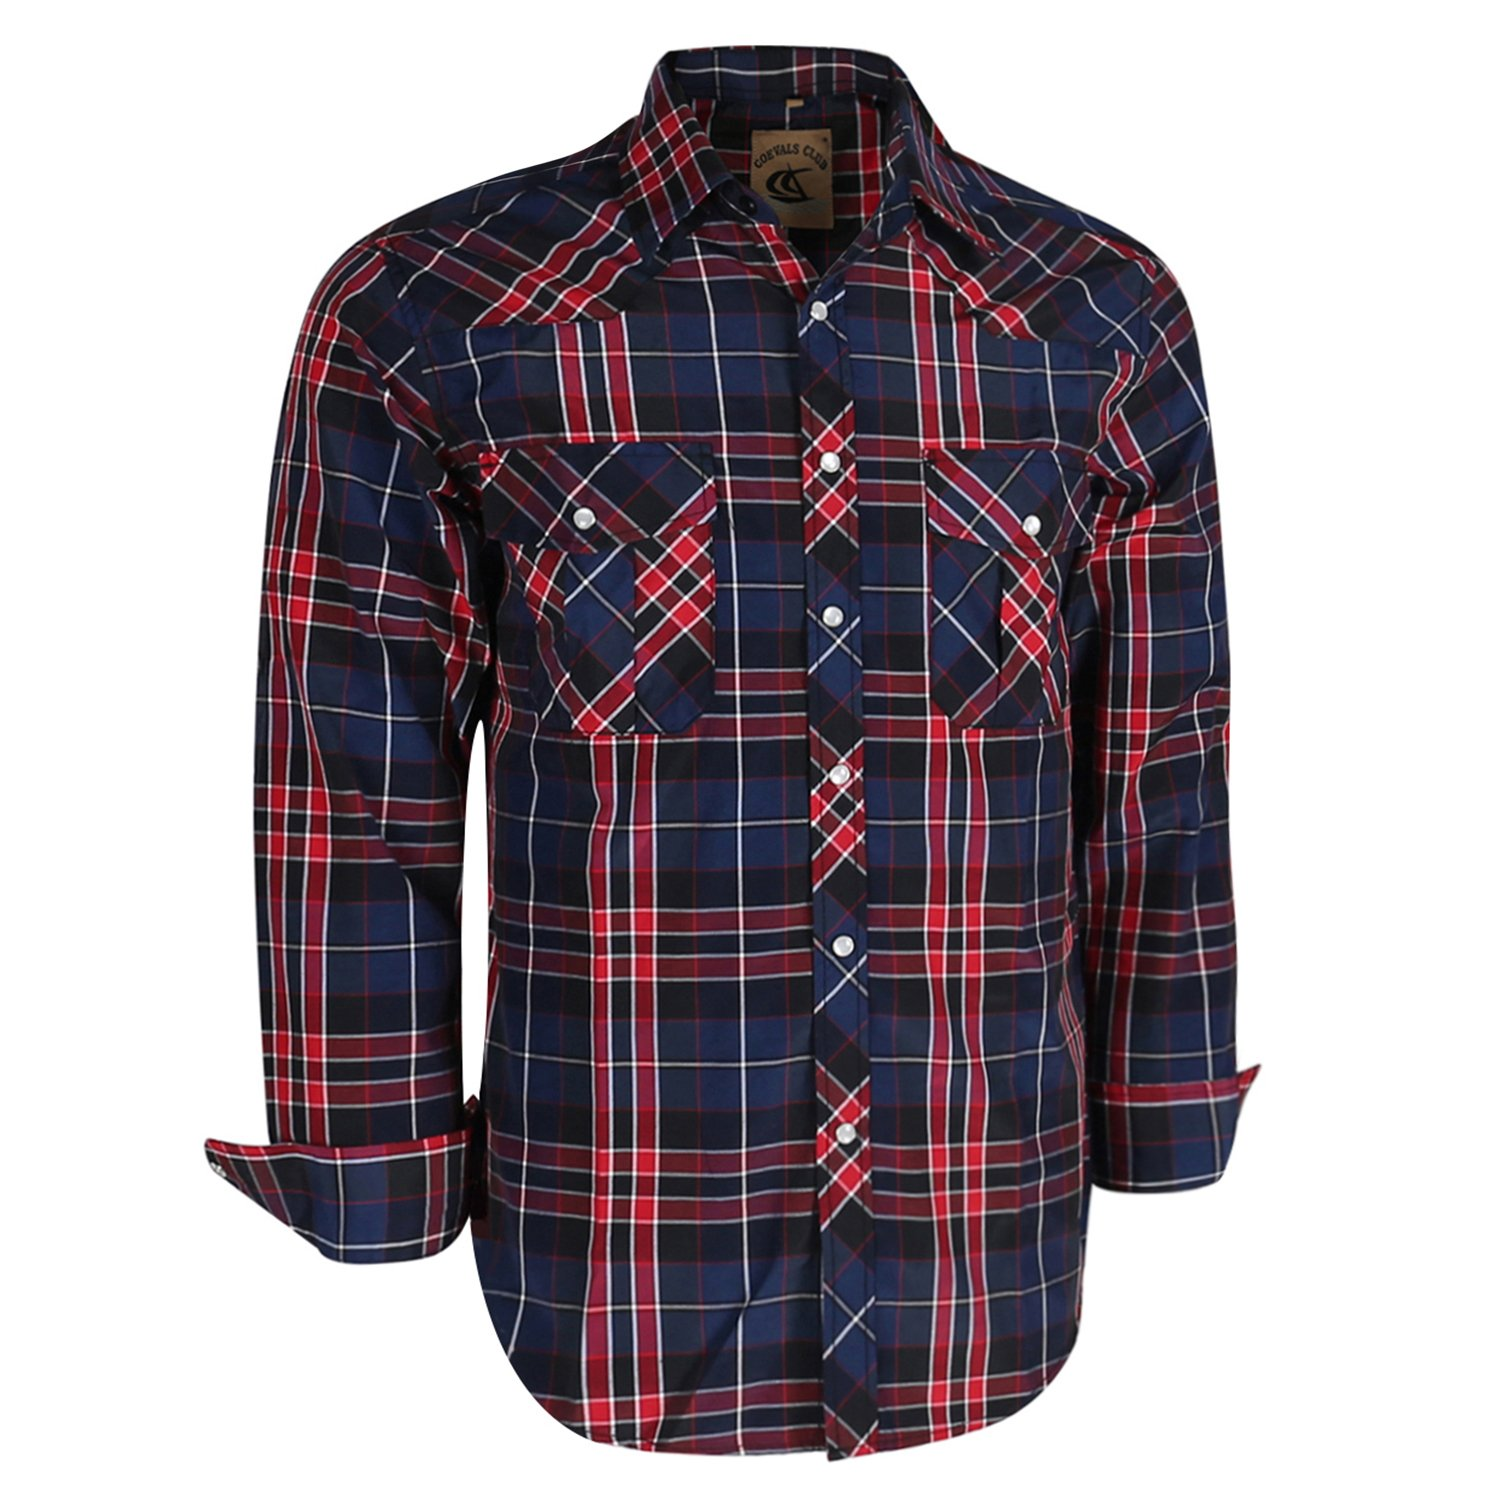 Coevals Club Men's Long Sleeve Casual Western Plaid Snap Buttons Shirt